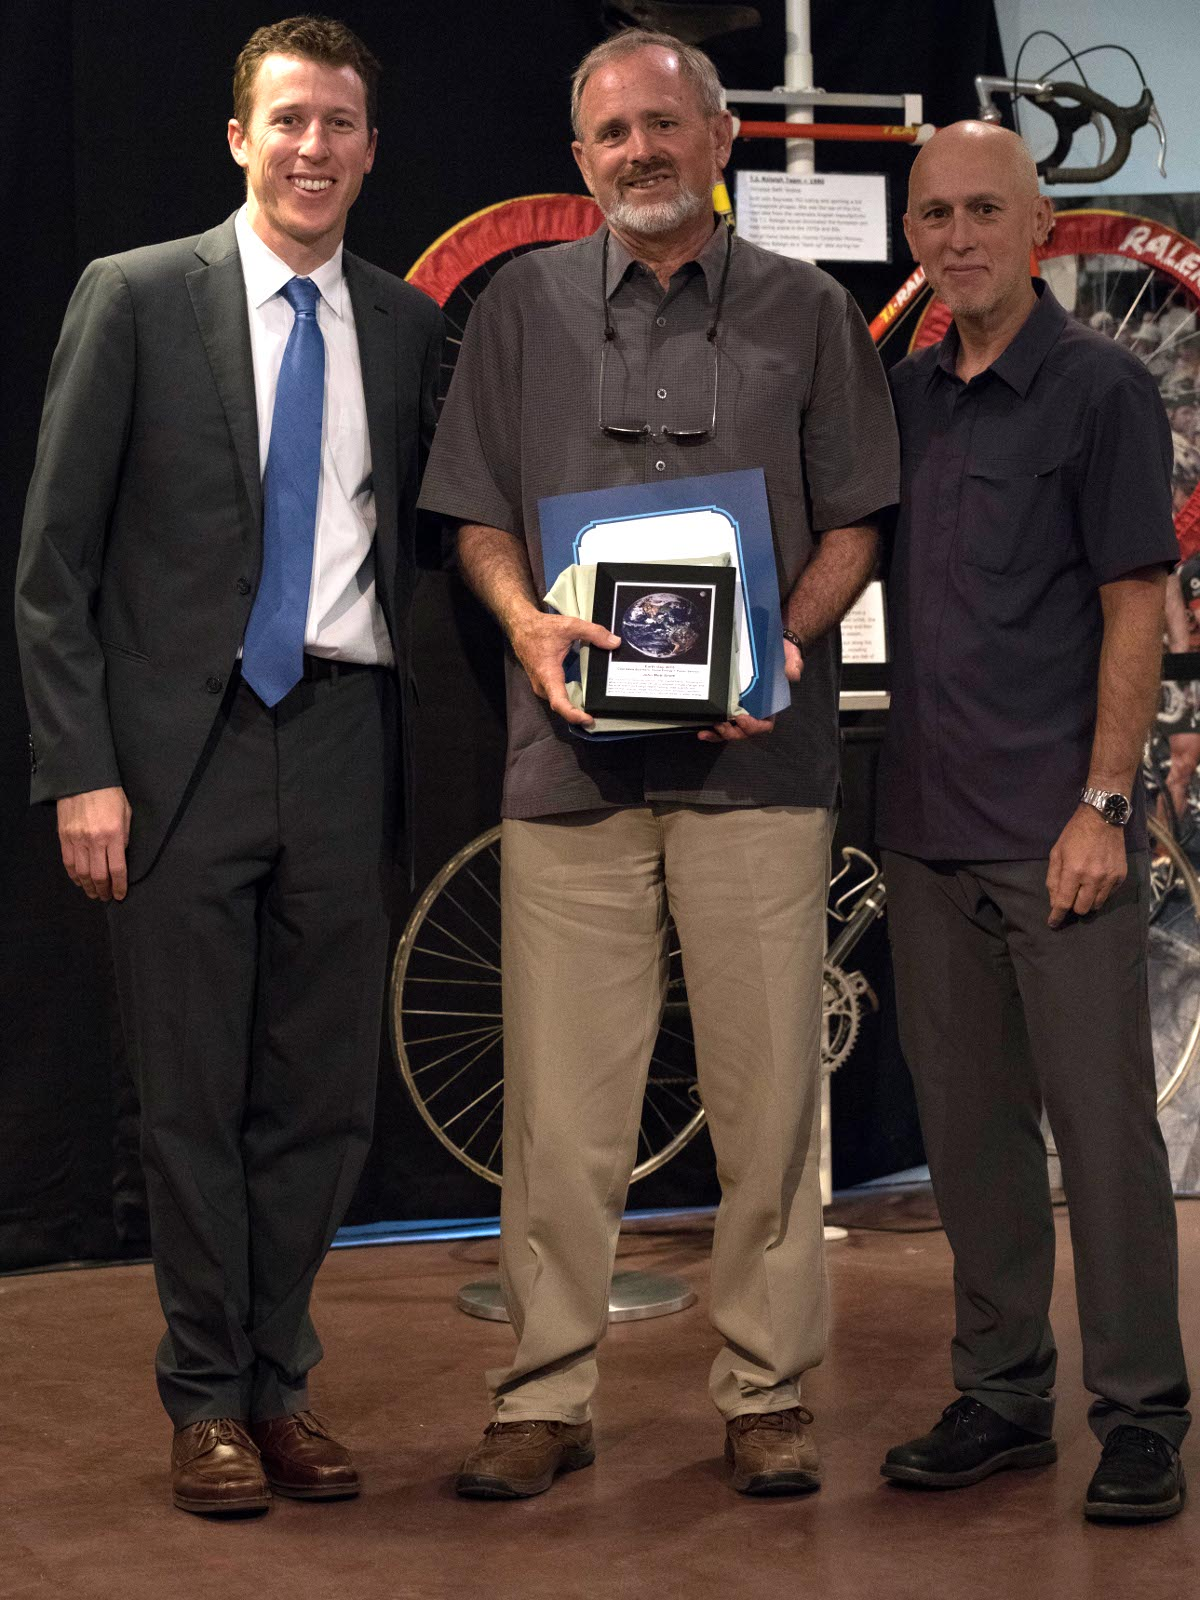 John Mott-Smith, flanked by Mayor Dan Wolk and Councilman Robb Davis, holds his Cool Davis Eco-hero award. Cool Davis honored John for his work in both energy efficiency and his out-standing public service. John's Davis Enterprise column, focuses on what individuals and municipalities can do to address climate change, and provides us with new ideas. His work as Yolo County's Climate Change Advisor and Yolo Energy Watch's Leader has helped cities quantify their energy usage and identify ways to reduce it. As John is also a founder of Cool Davis and a former board member, Cool Davis was especially pleased to name John a 2015 Eco-hero.